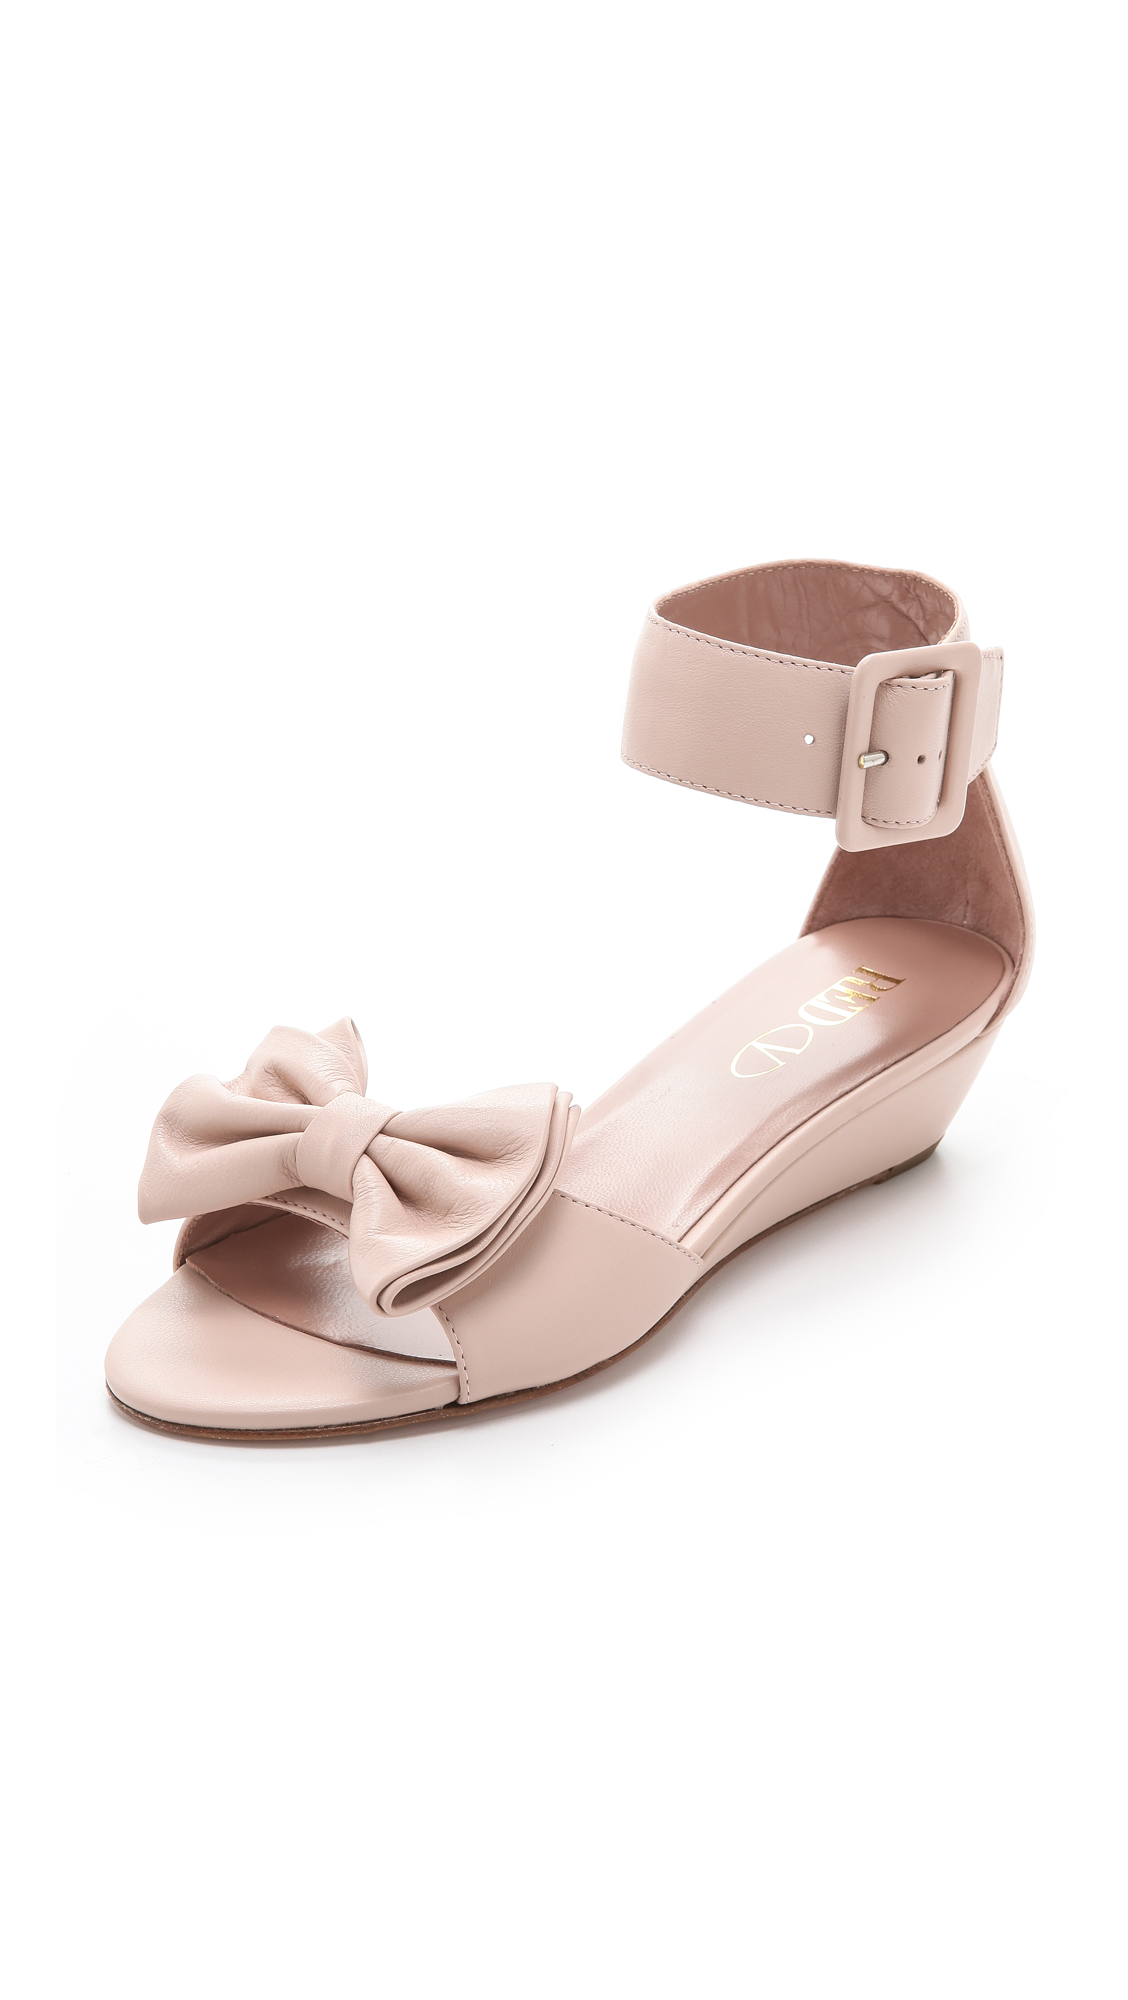 9cc250dfdf4 Lyst - RED Valentino Ankle Strap Bow Sandals in Pink